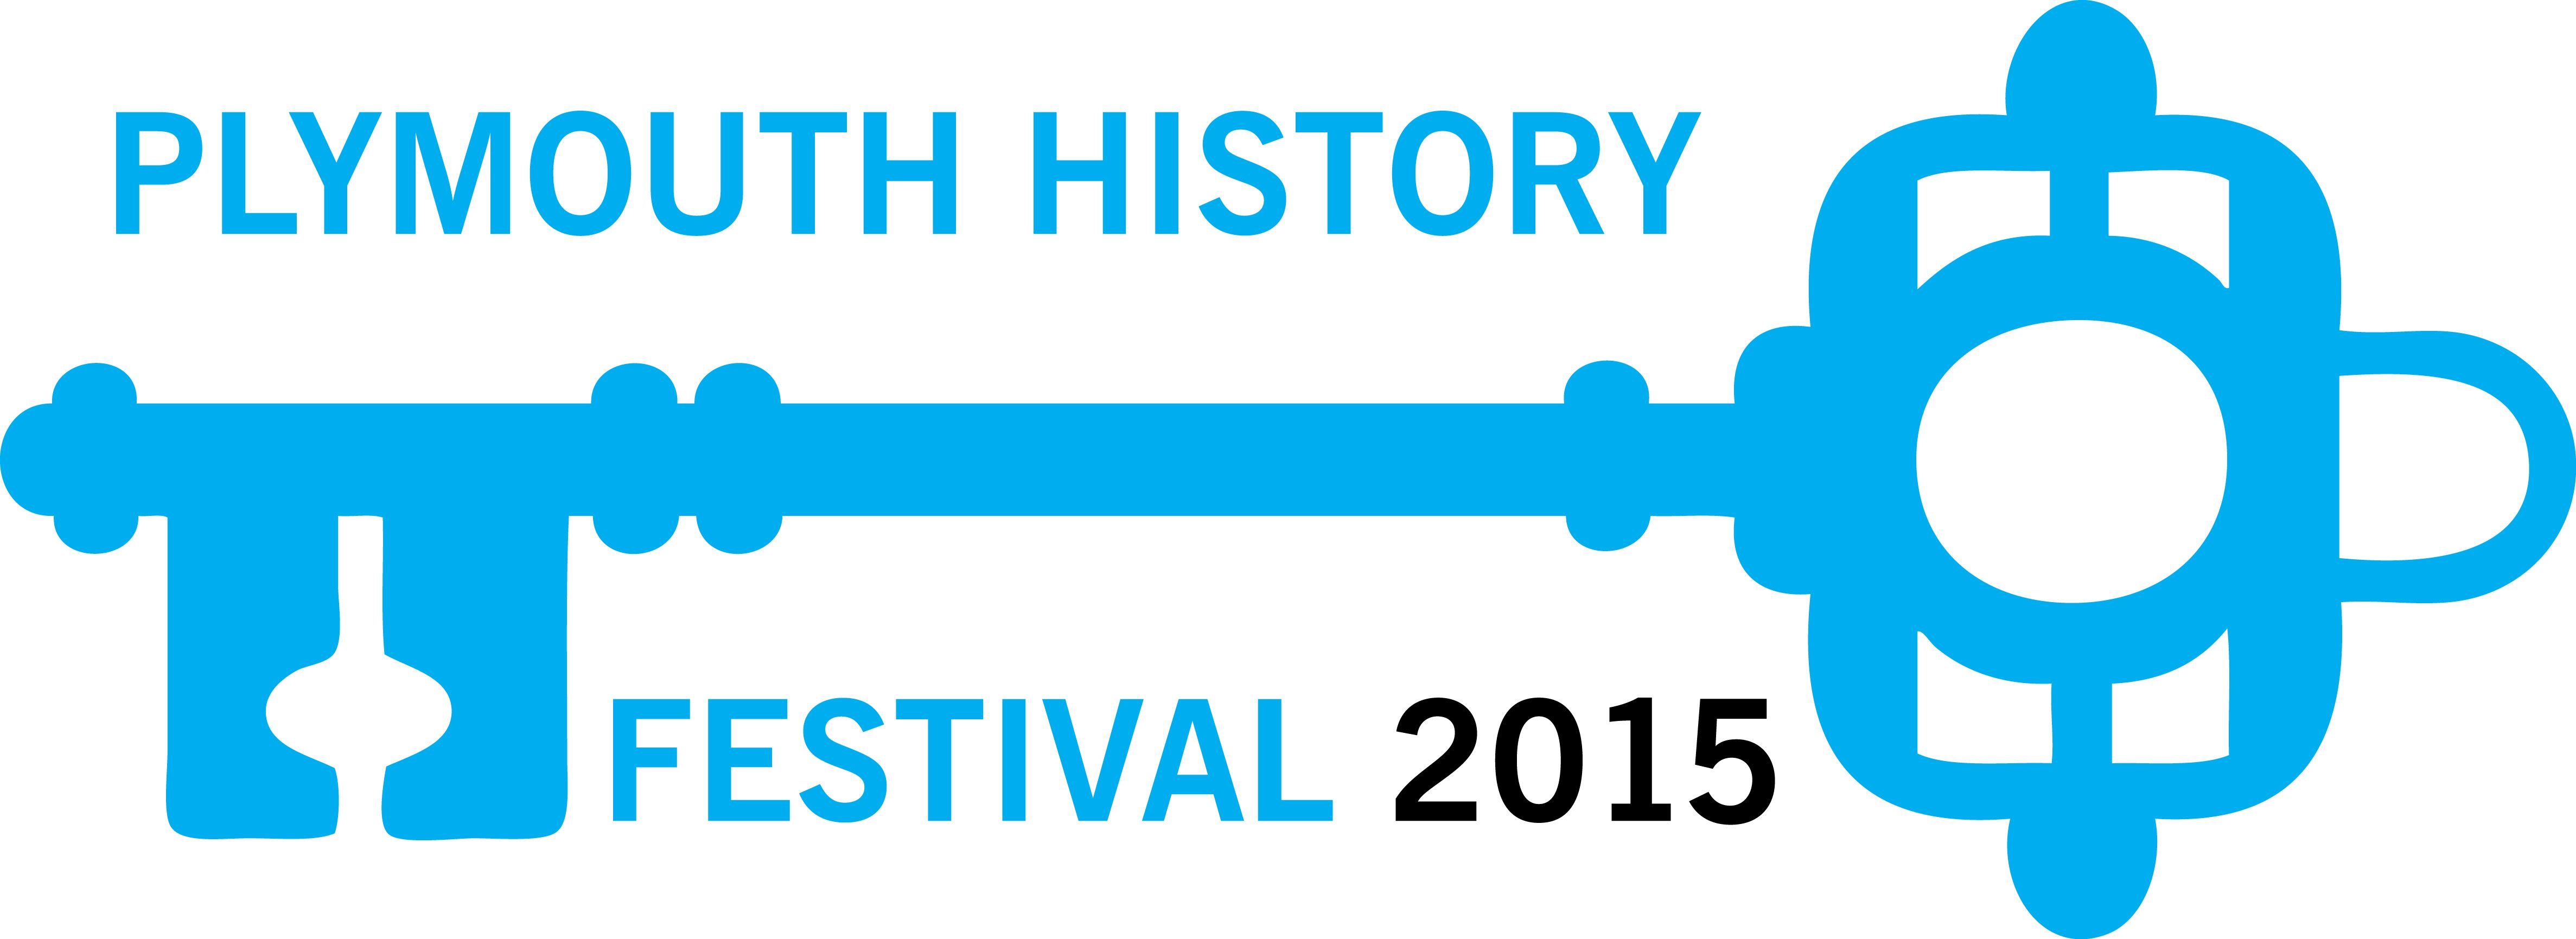 Plymouth History festival